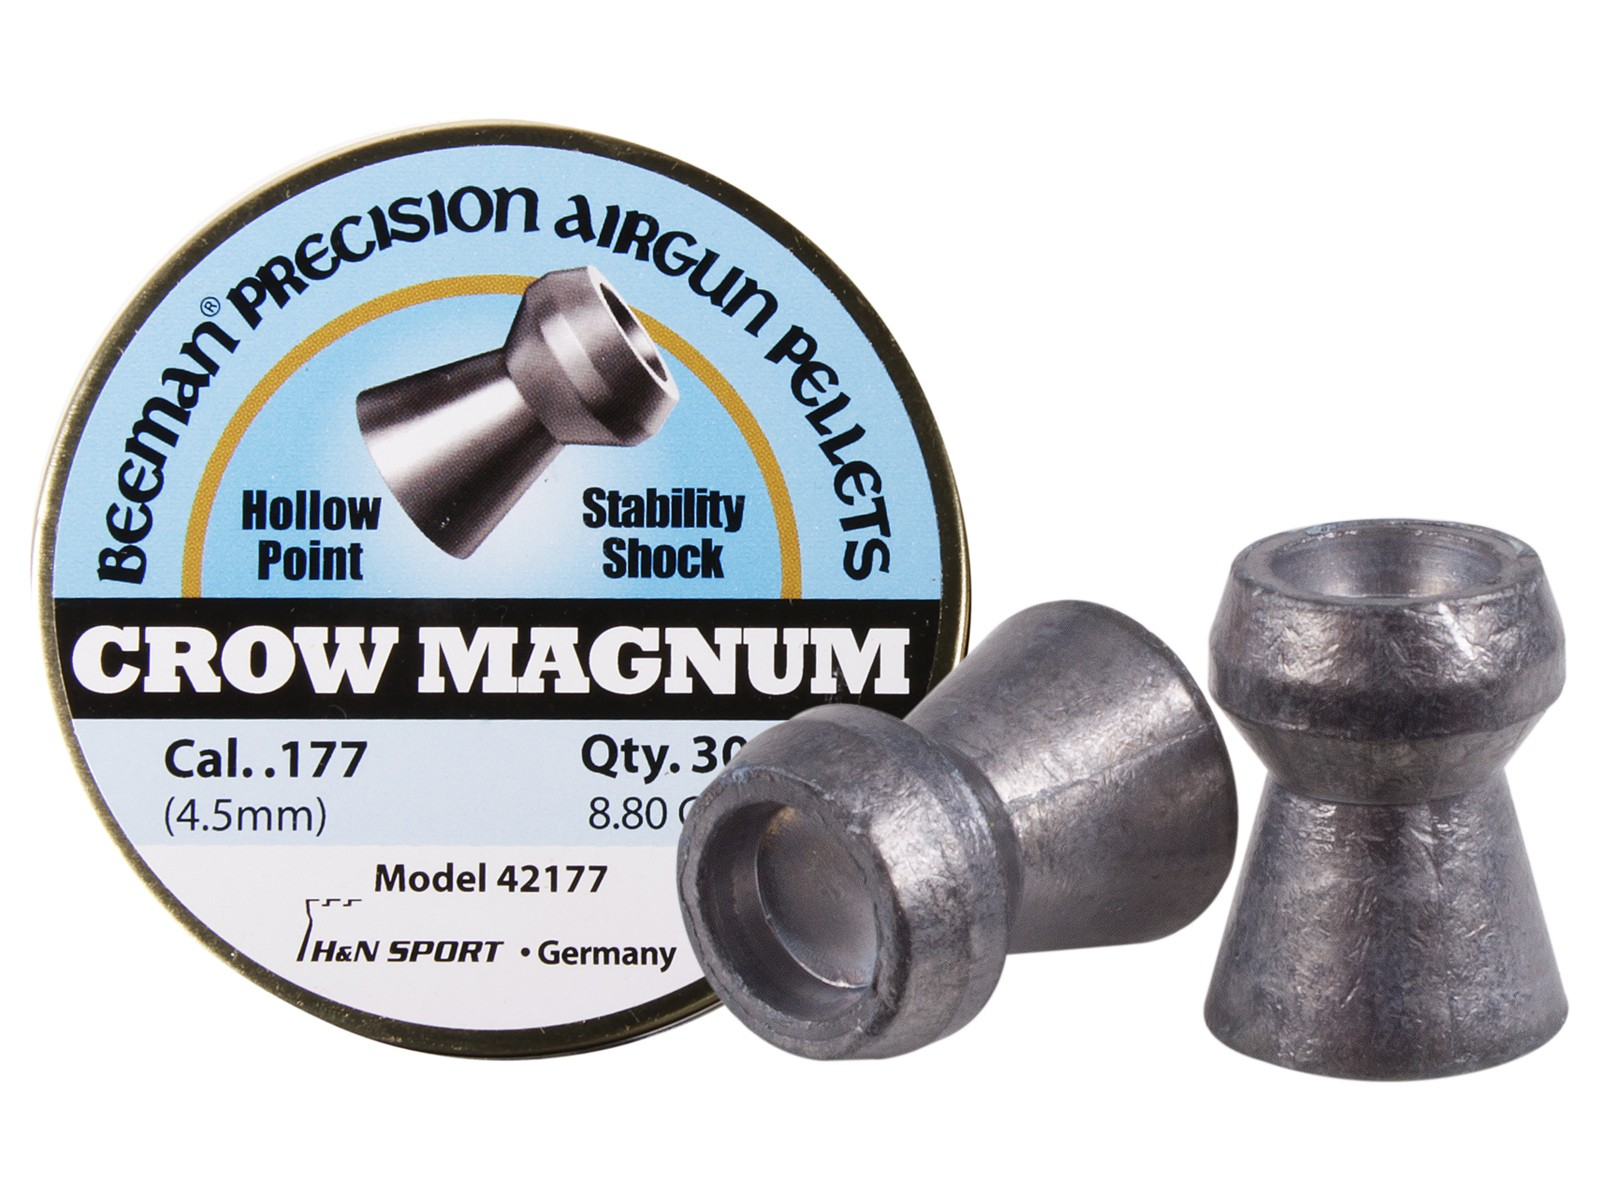 Beeman Crow Magnum .177 Cal, 8.80 Grains, Hollowpoint, 300ct